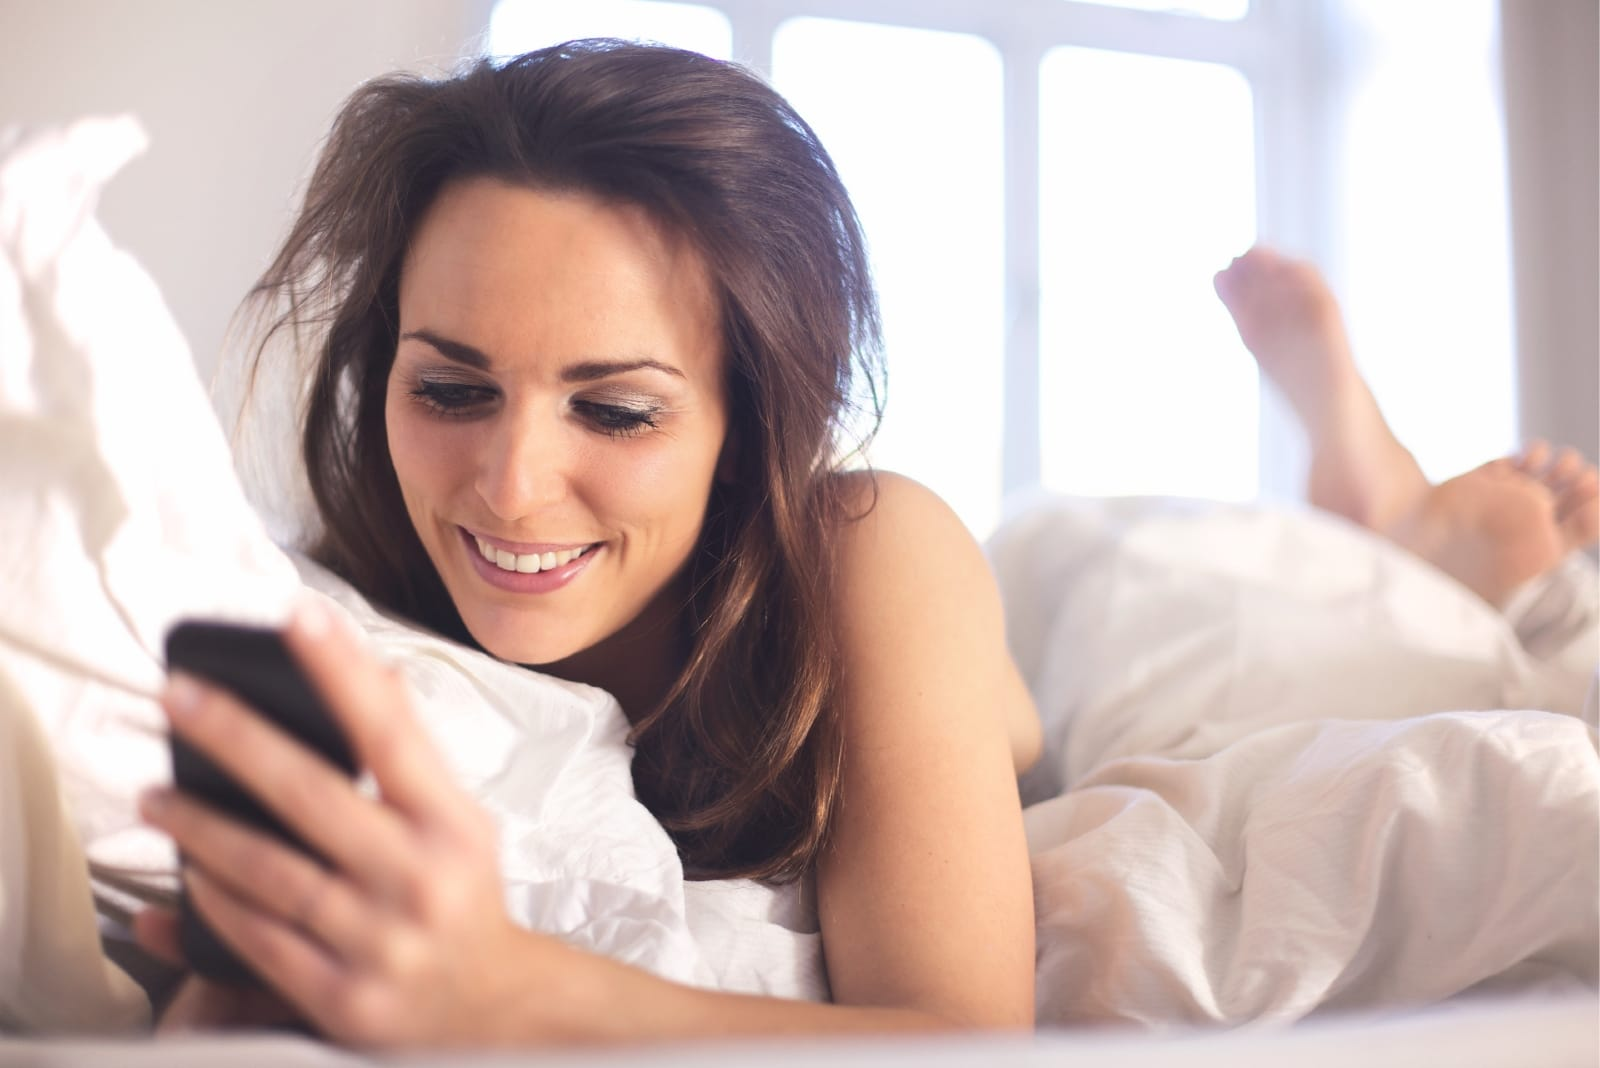 woman looking at phone while laying on bed